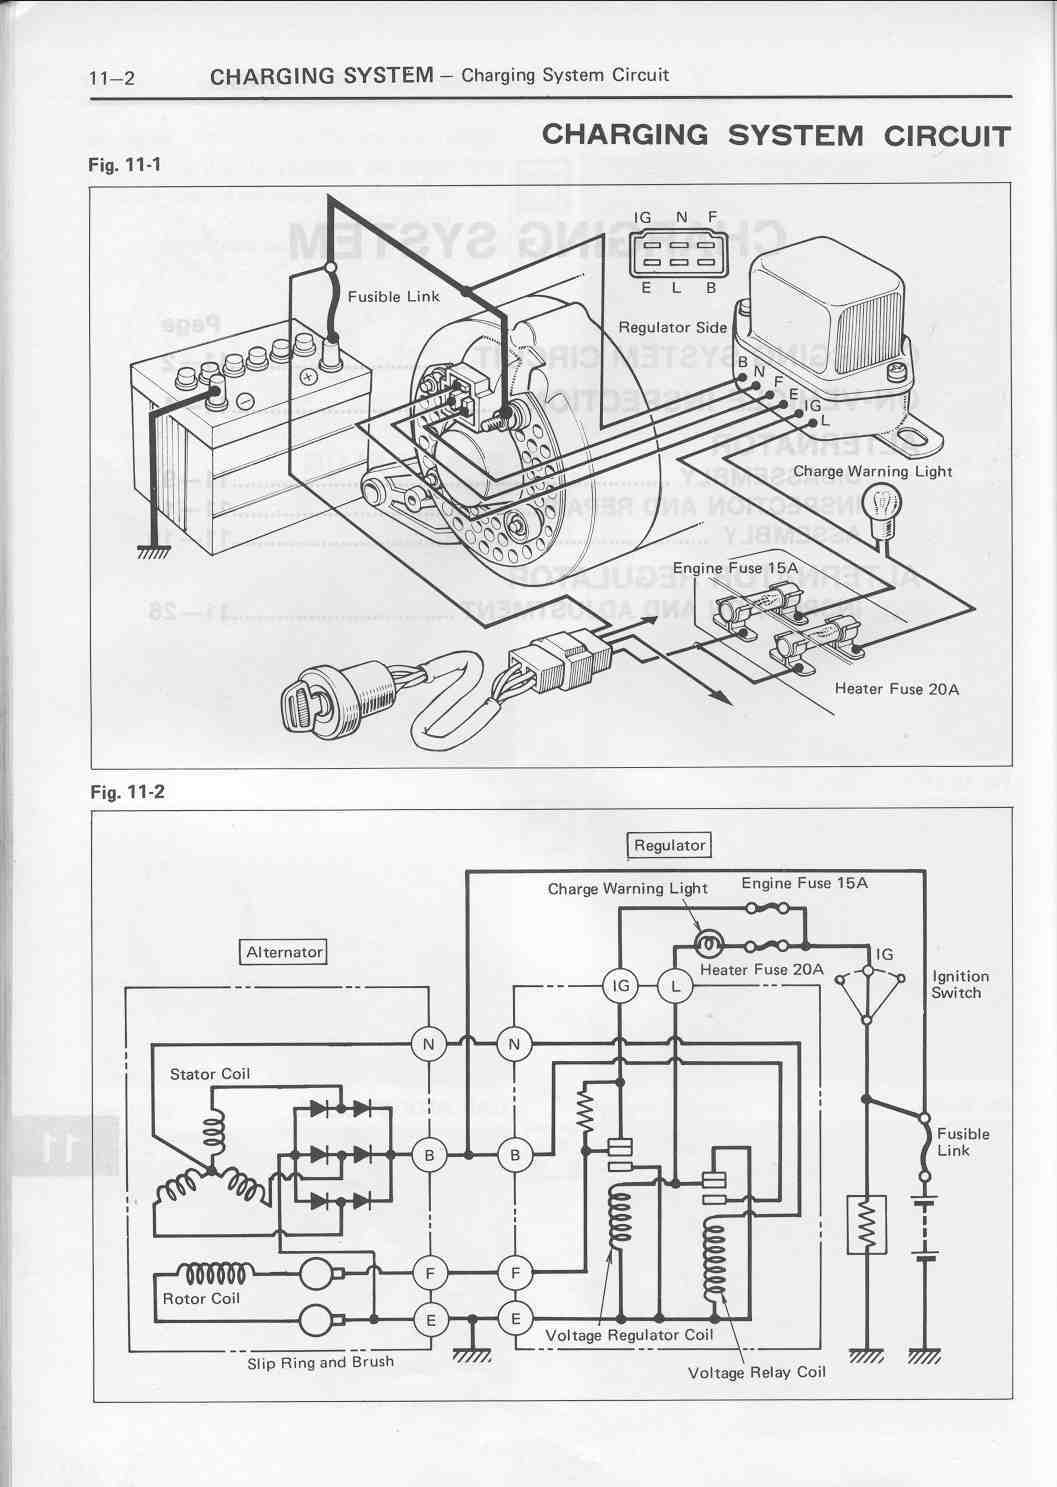 Ra60 21r-c Wiring Diagram